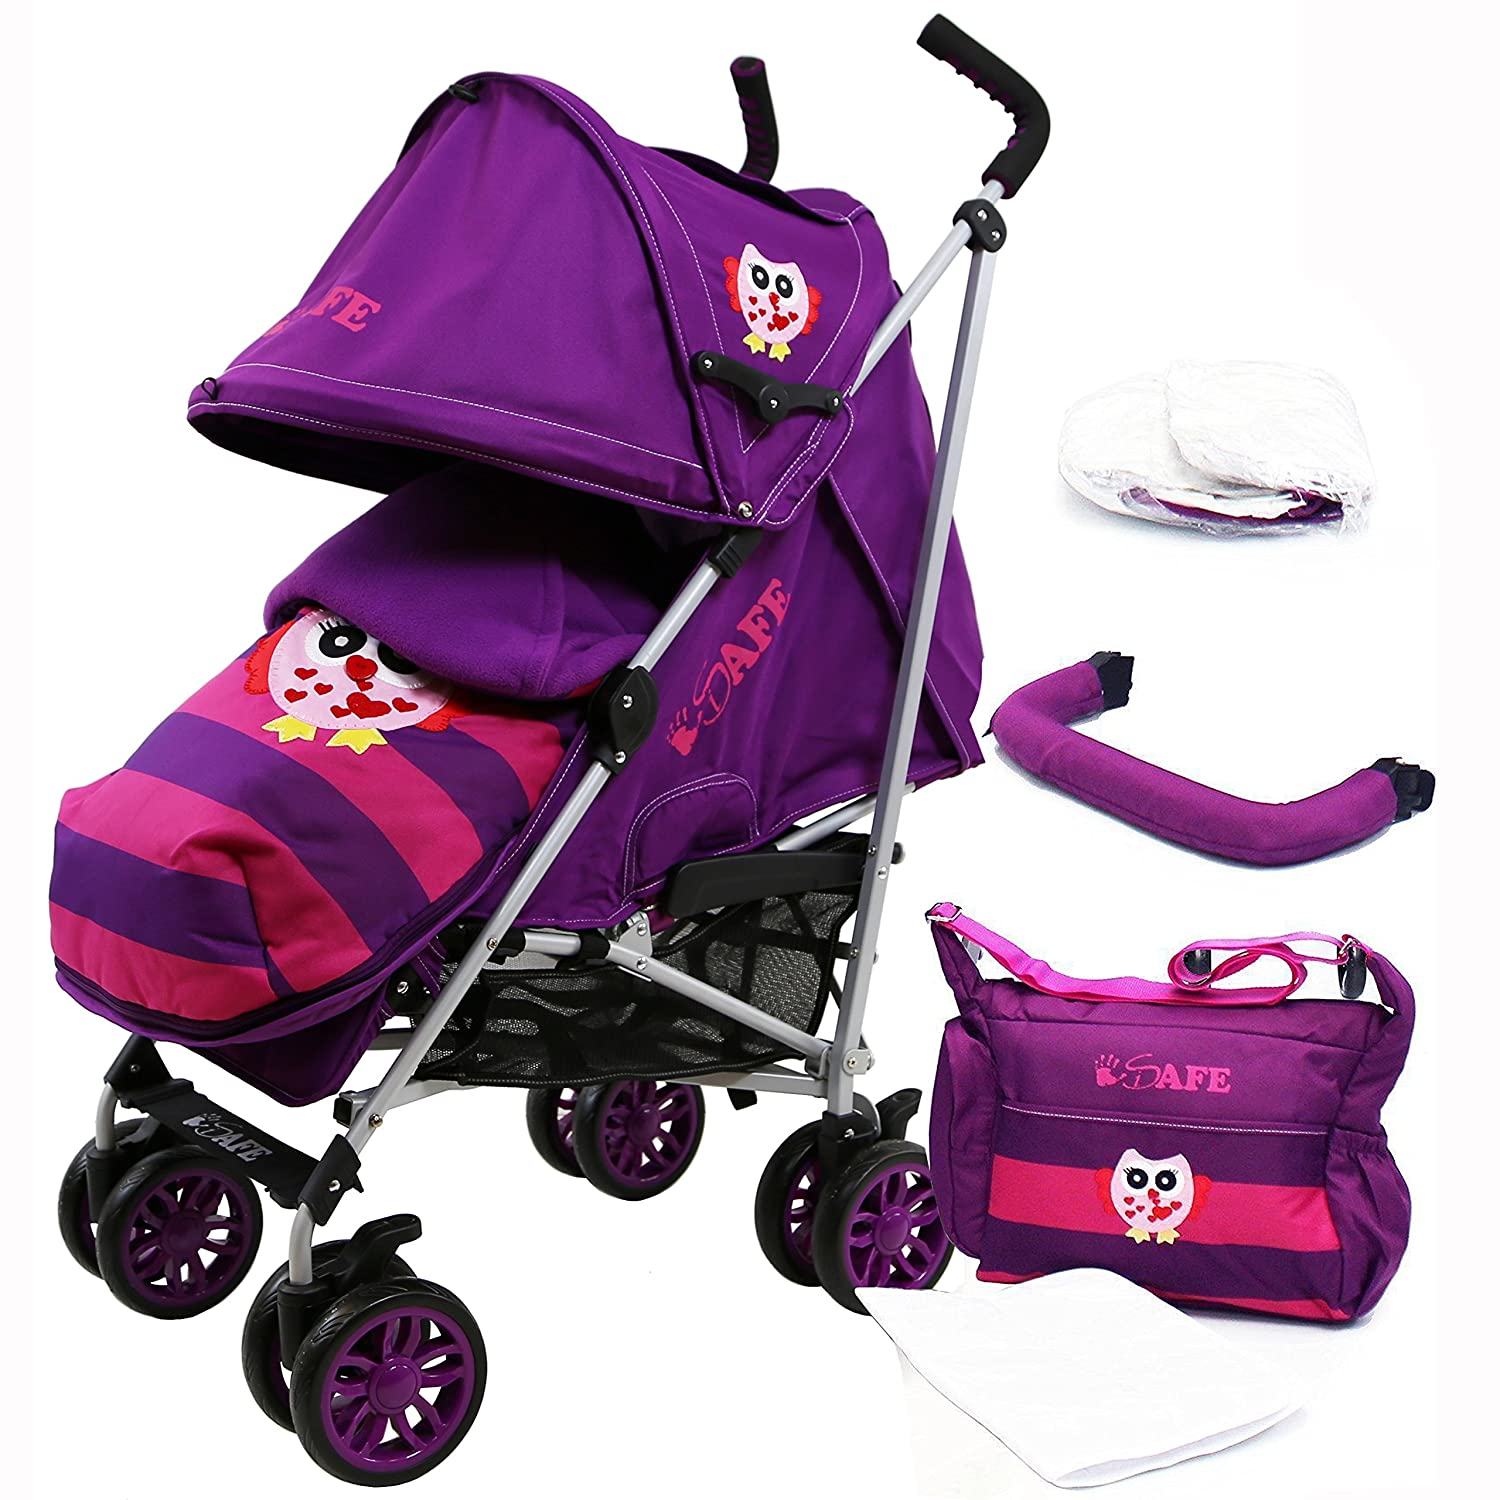 iSafe buggy stroller pushchair